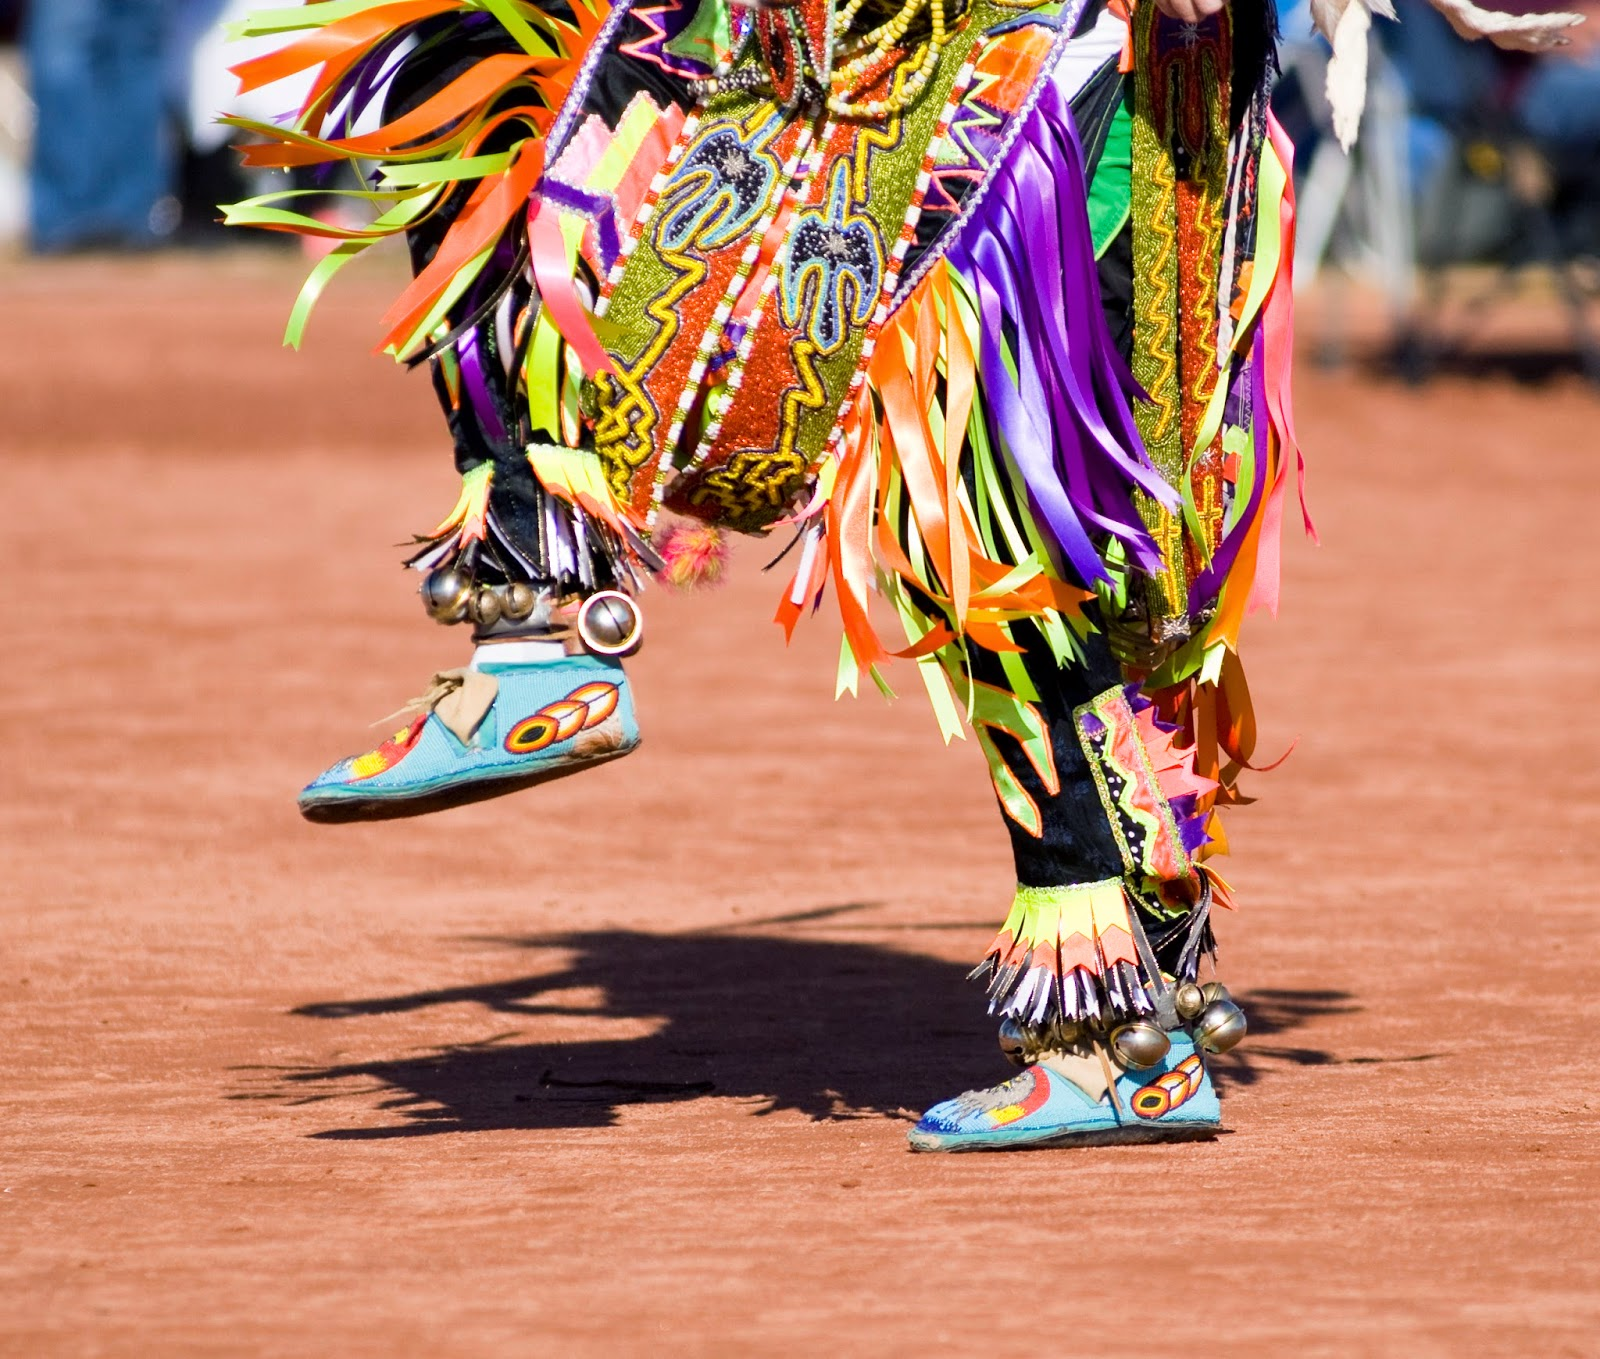 Image of dancer with colorful moccasins and dress